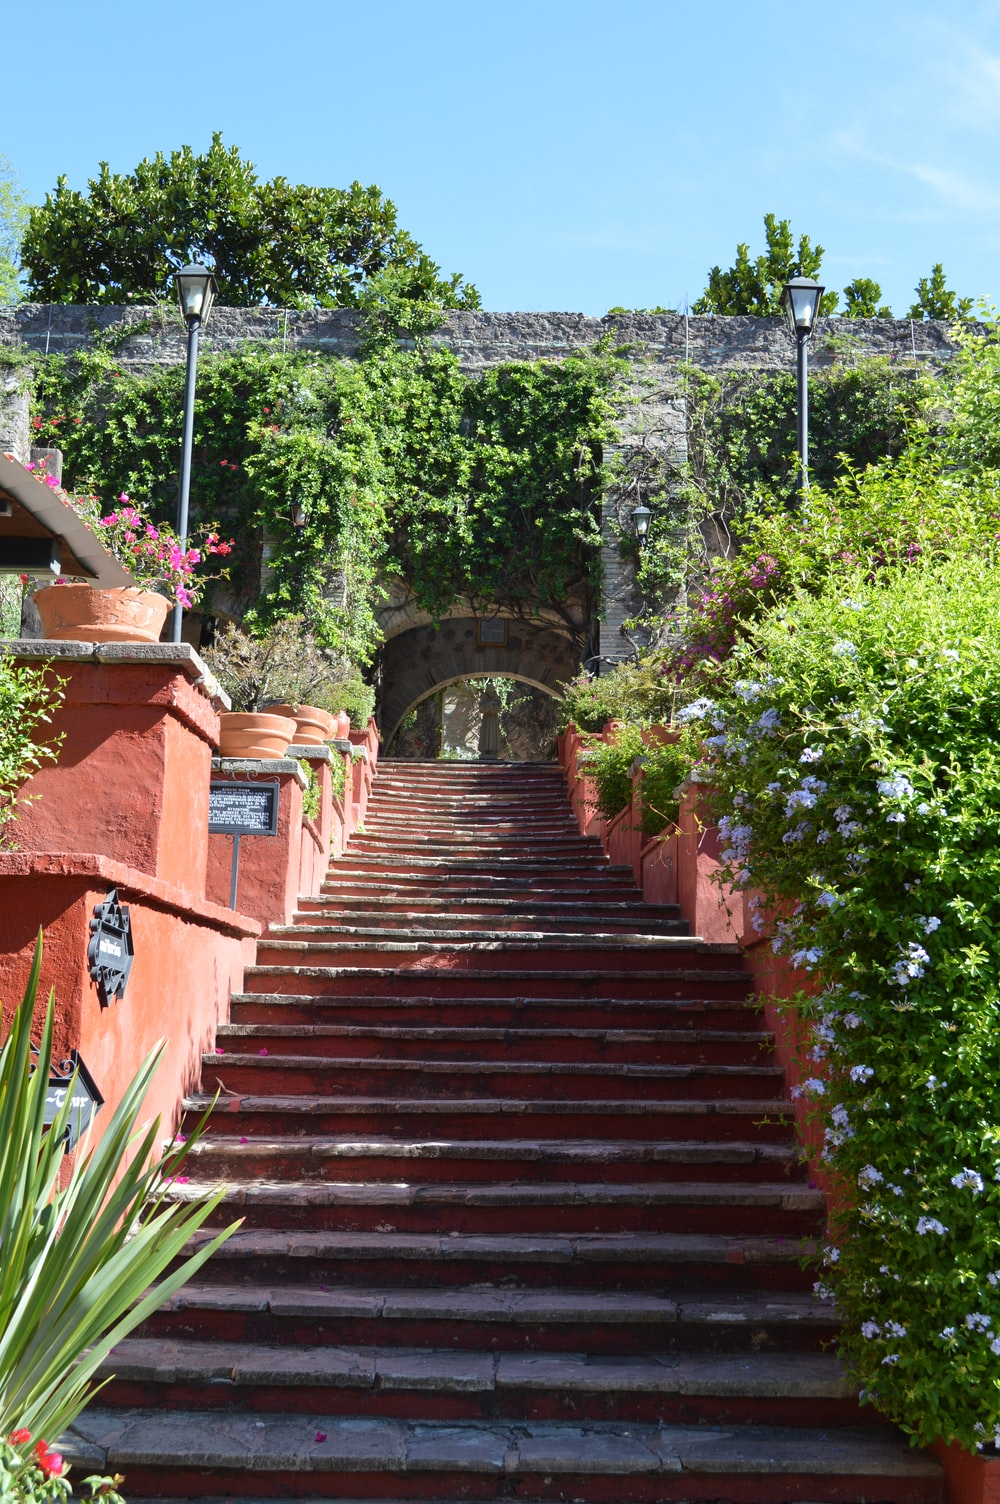 brown wooden stairs with green plants